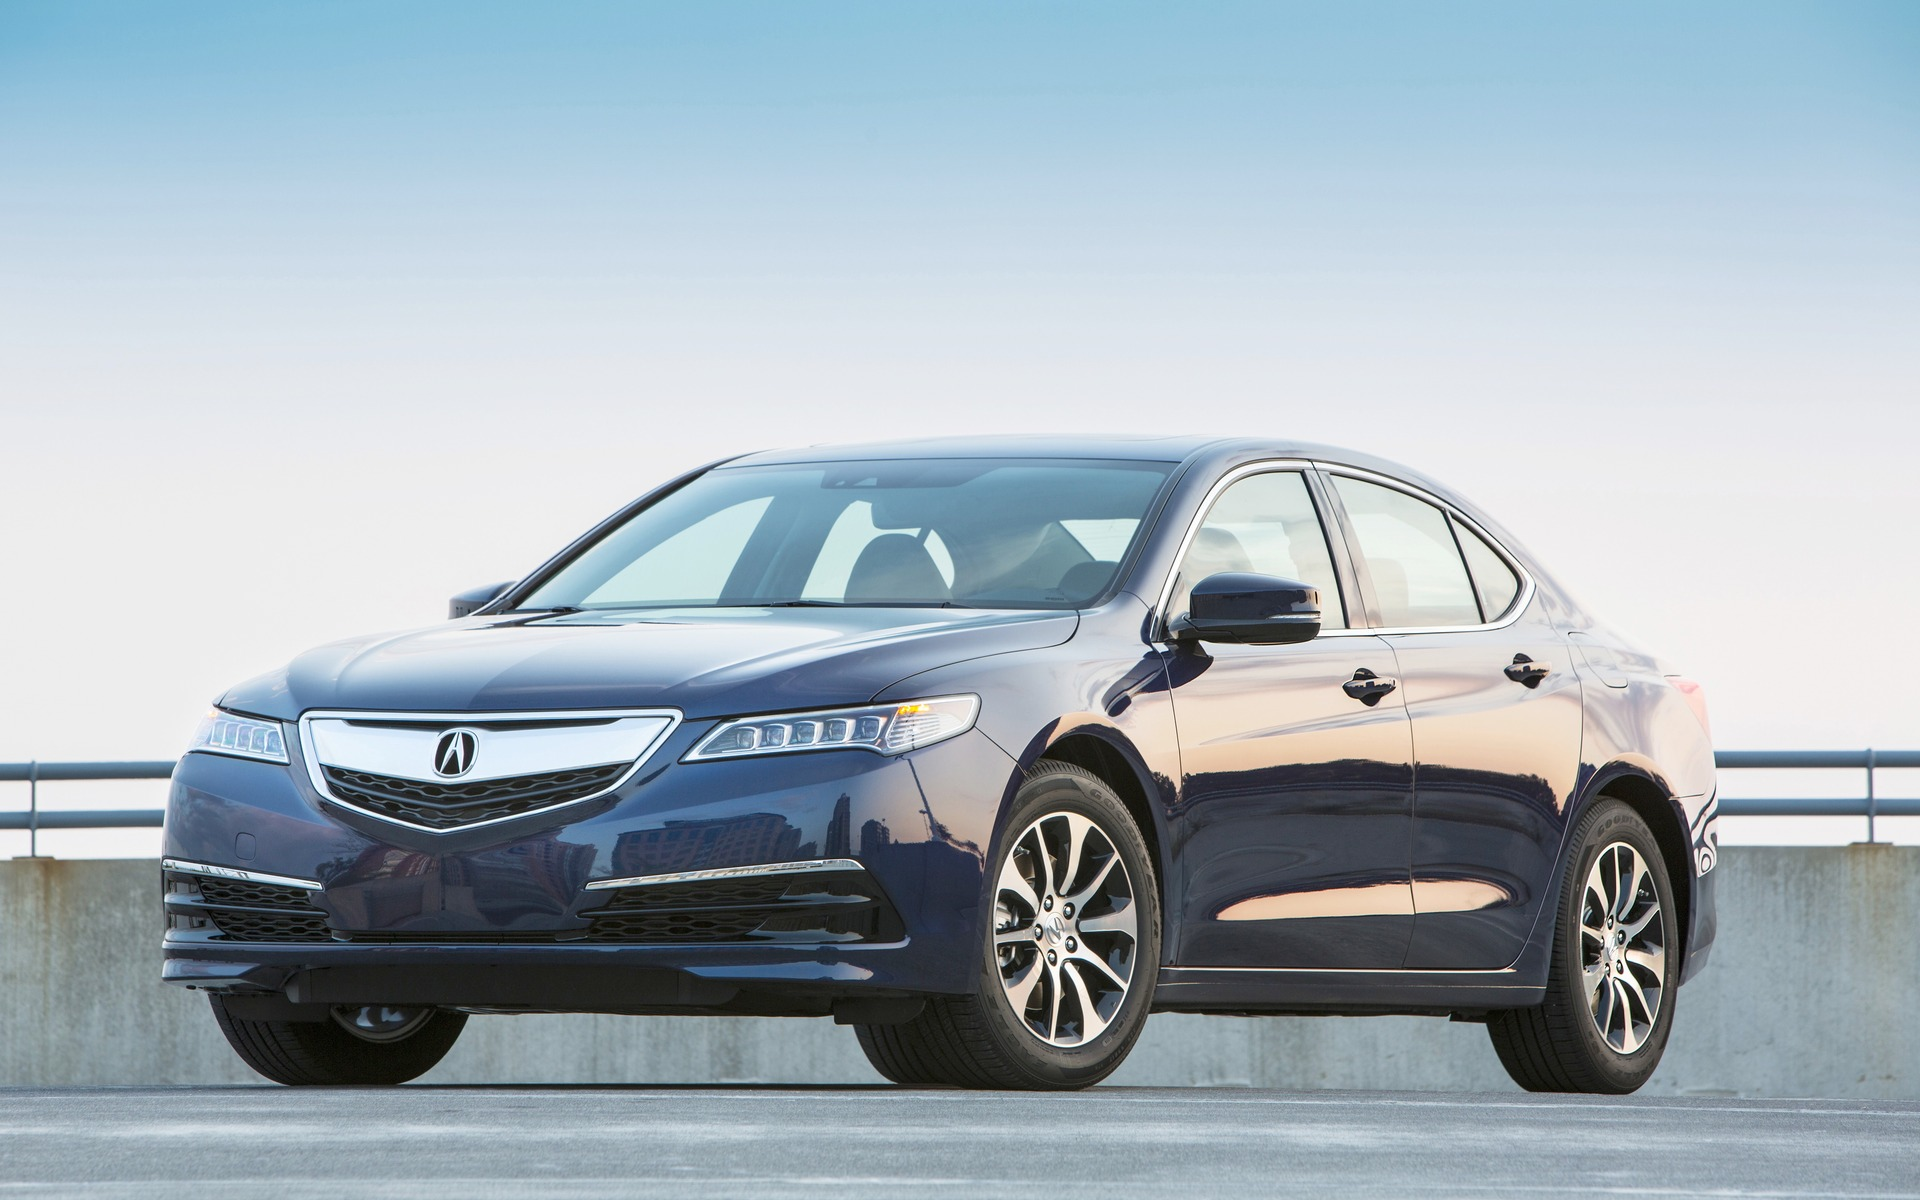 2017 Acura Tlx Specifications The Car Guide